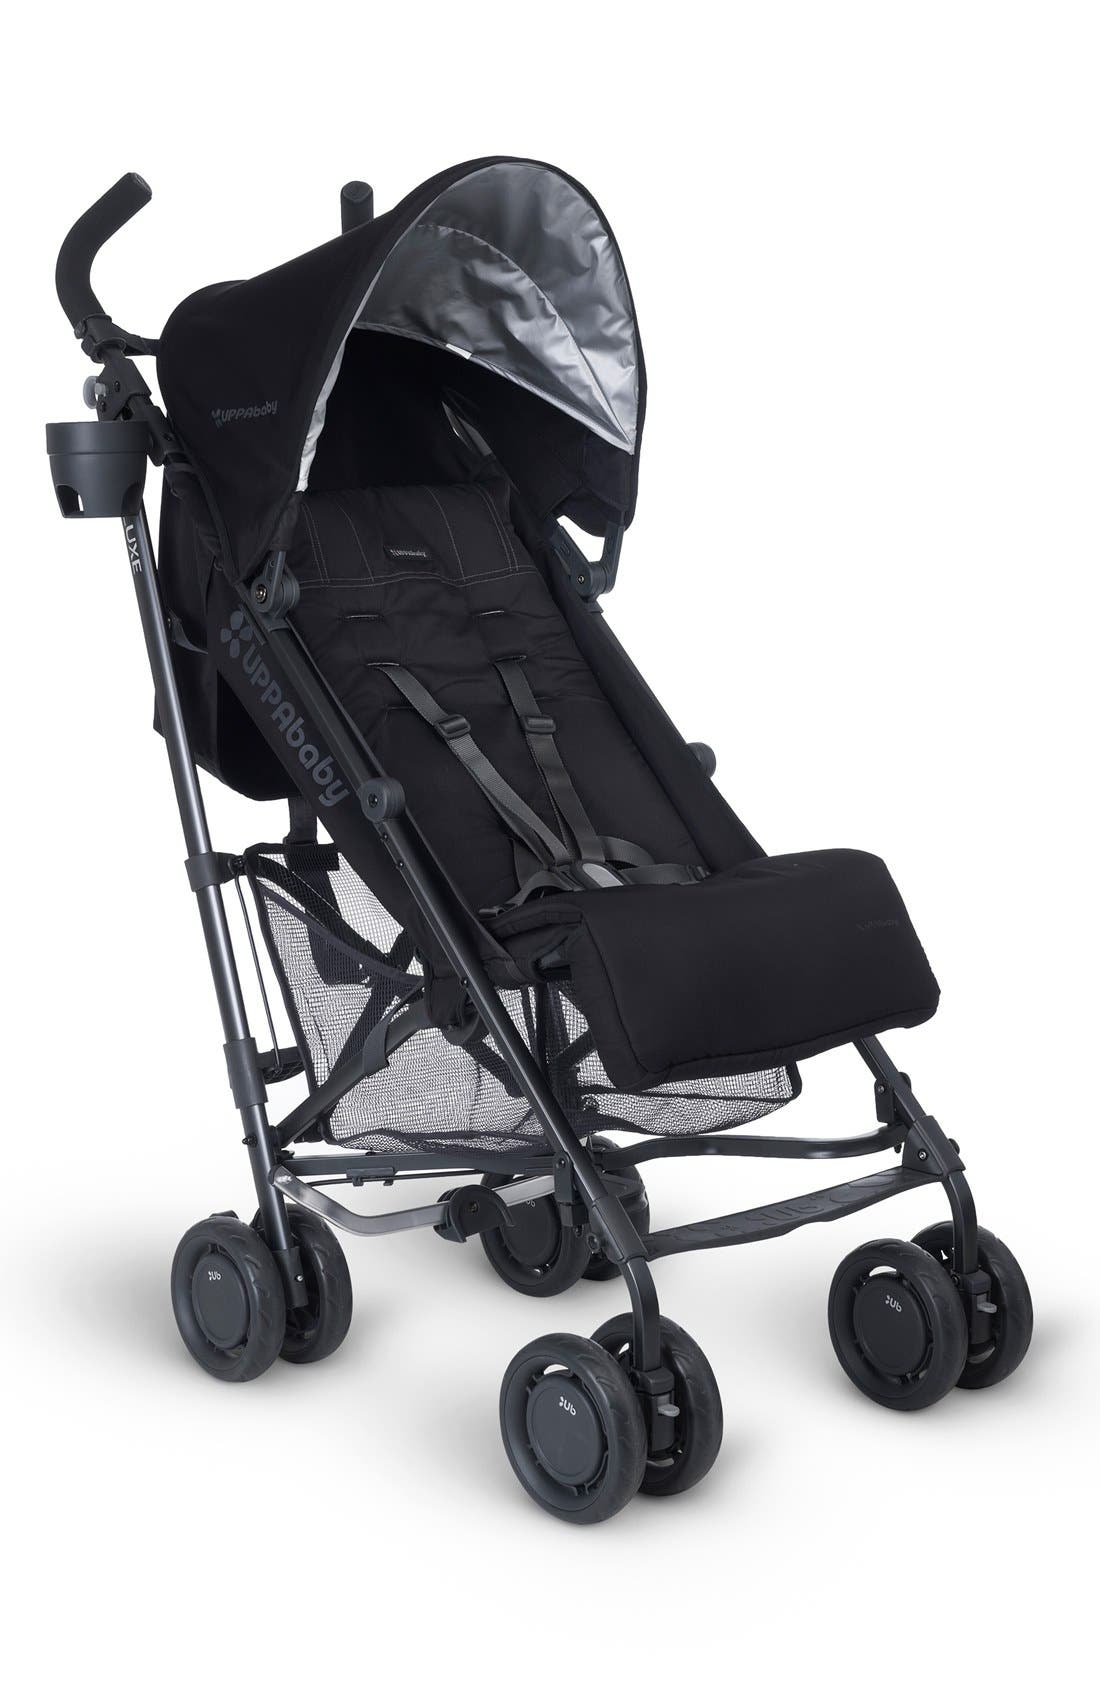 Main Image - UPPAbaby G-LUXE - Black Frame Reclining Umbrella Stroller